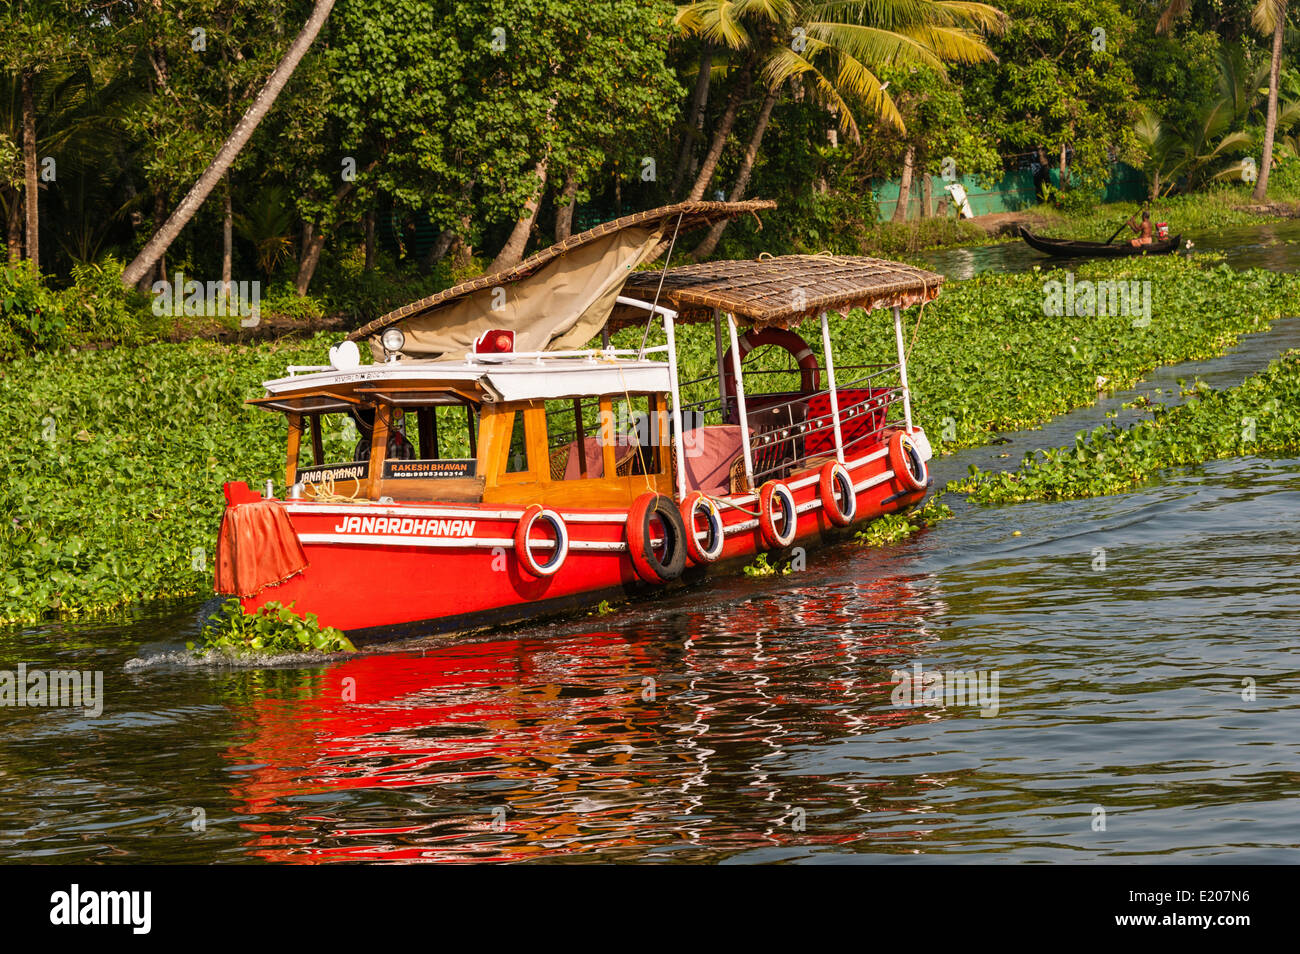 Red boat, Backwaters, Alleppey, Alappuzha District, Kerala, India - Stock Image